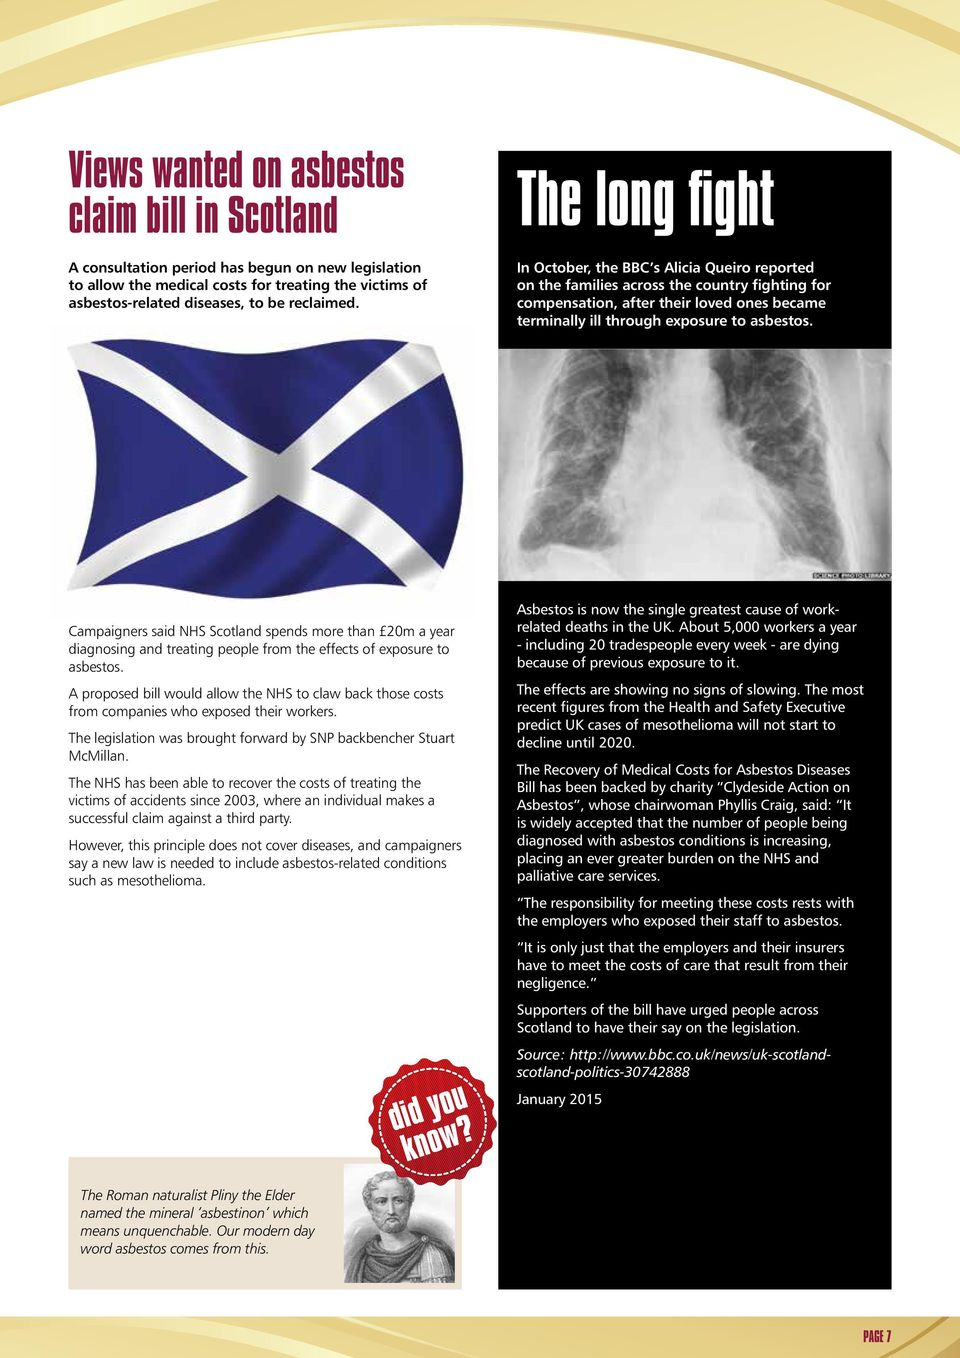 Campaigners said NHS Scotland spends more than 20m a year diagnosing and treating people from the effects of exposure to asbestos.